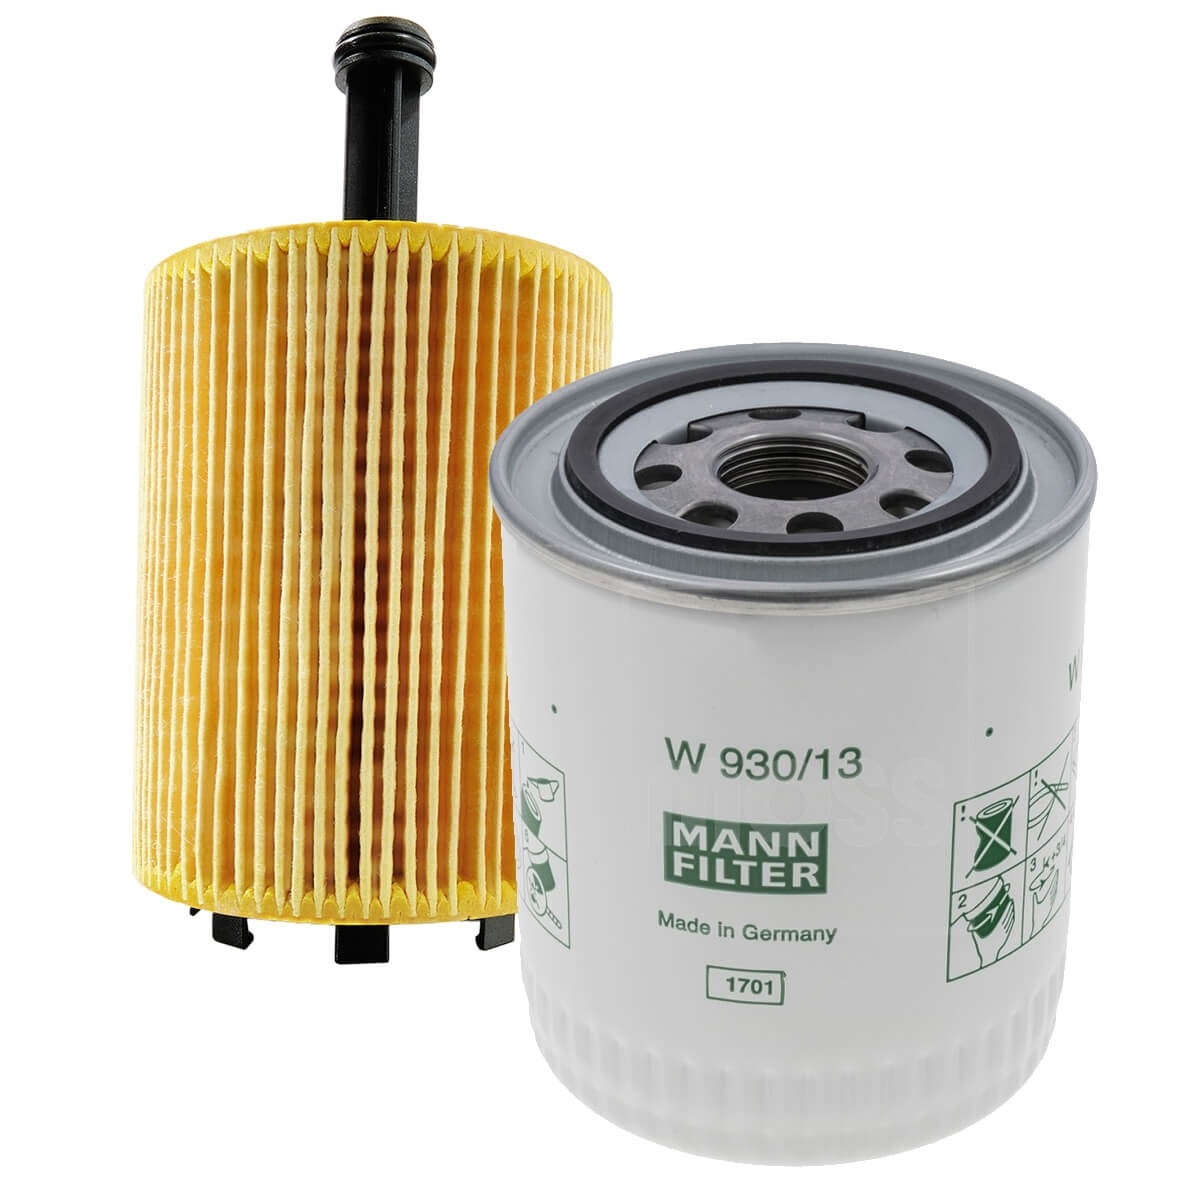 DACIA DUSTER Oil Filter